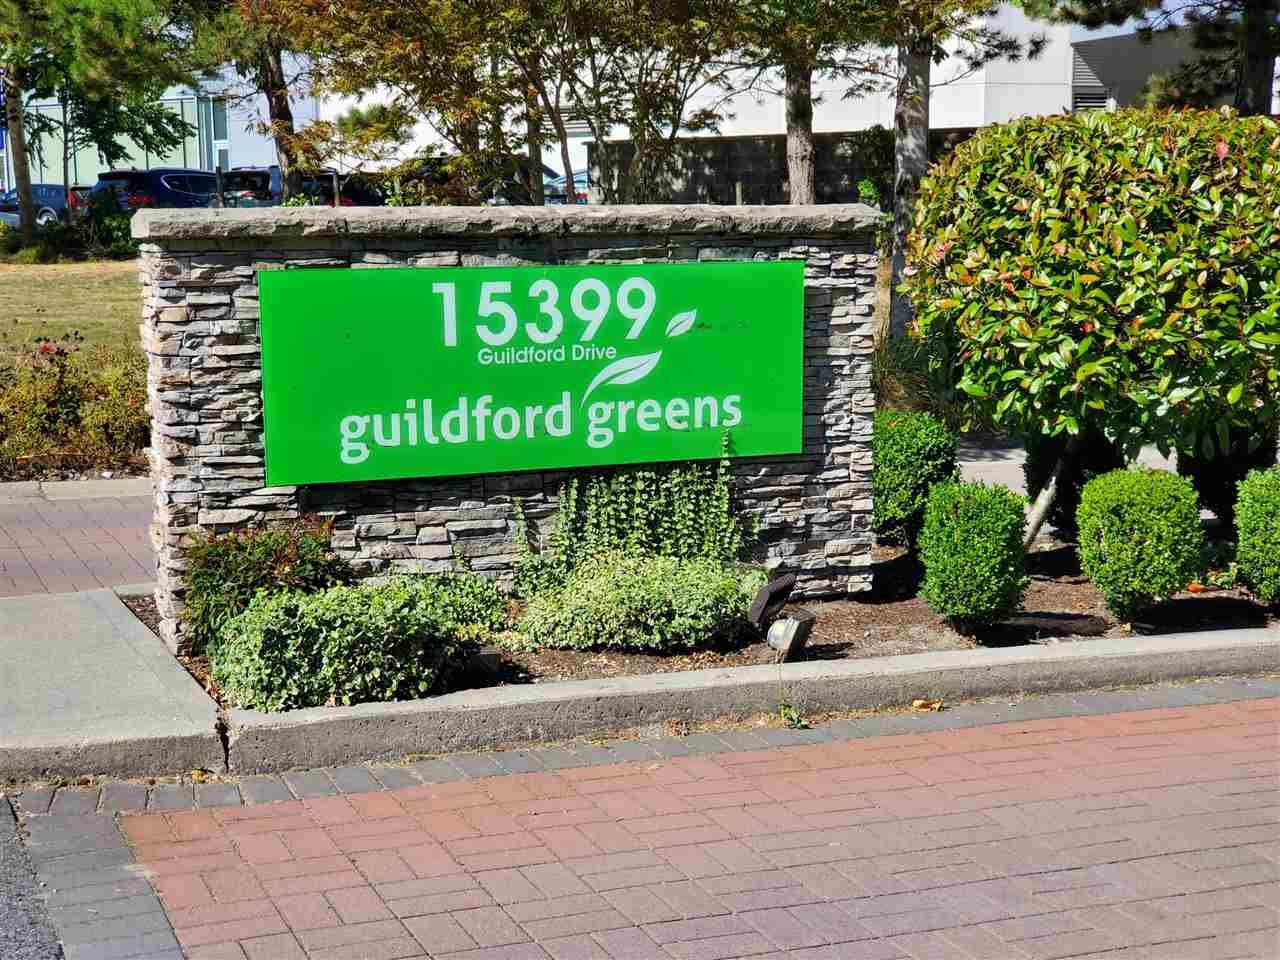 """Main Photo: 46 15399 GUILDFORD Drive in Surrey: Guildford Townhouse for sale in """"GUILDFORD GREEN"""" (North Surrey)  : MLS®# R2577947"""